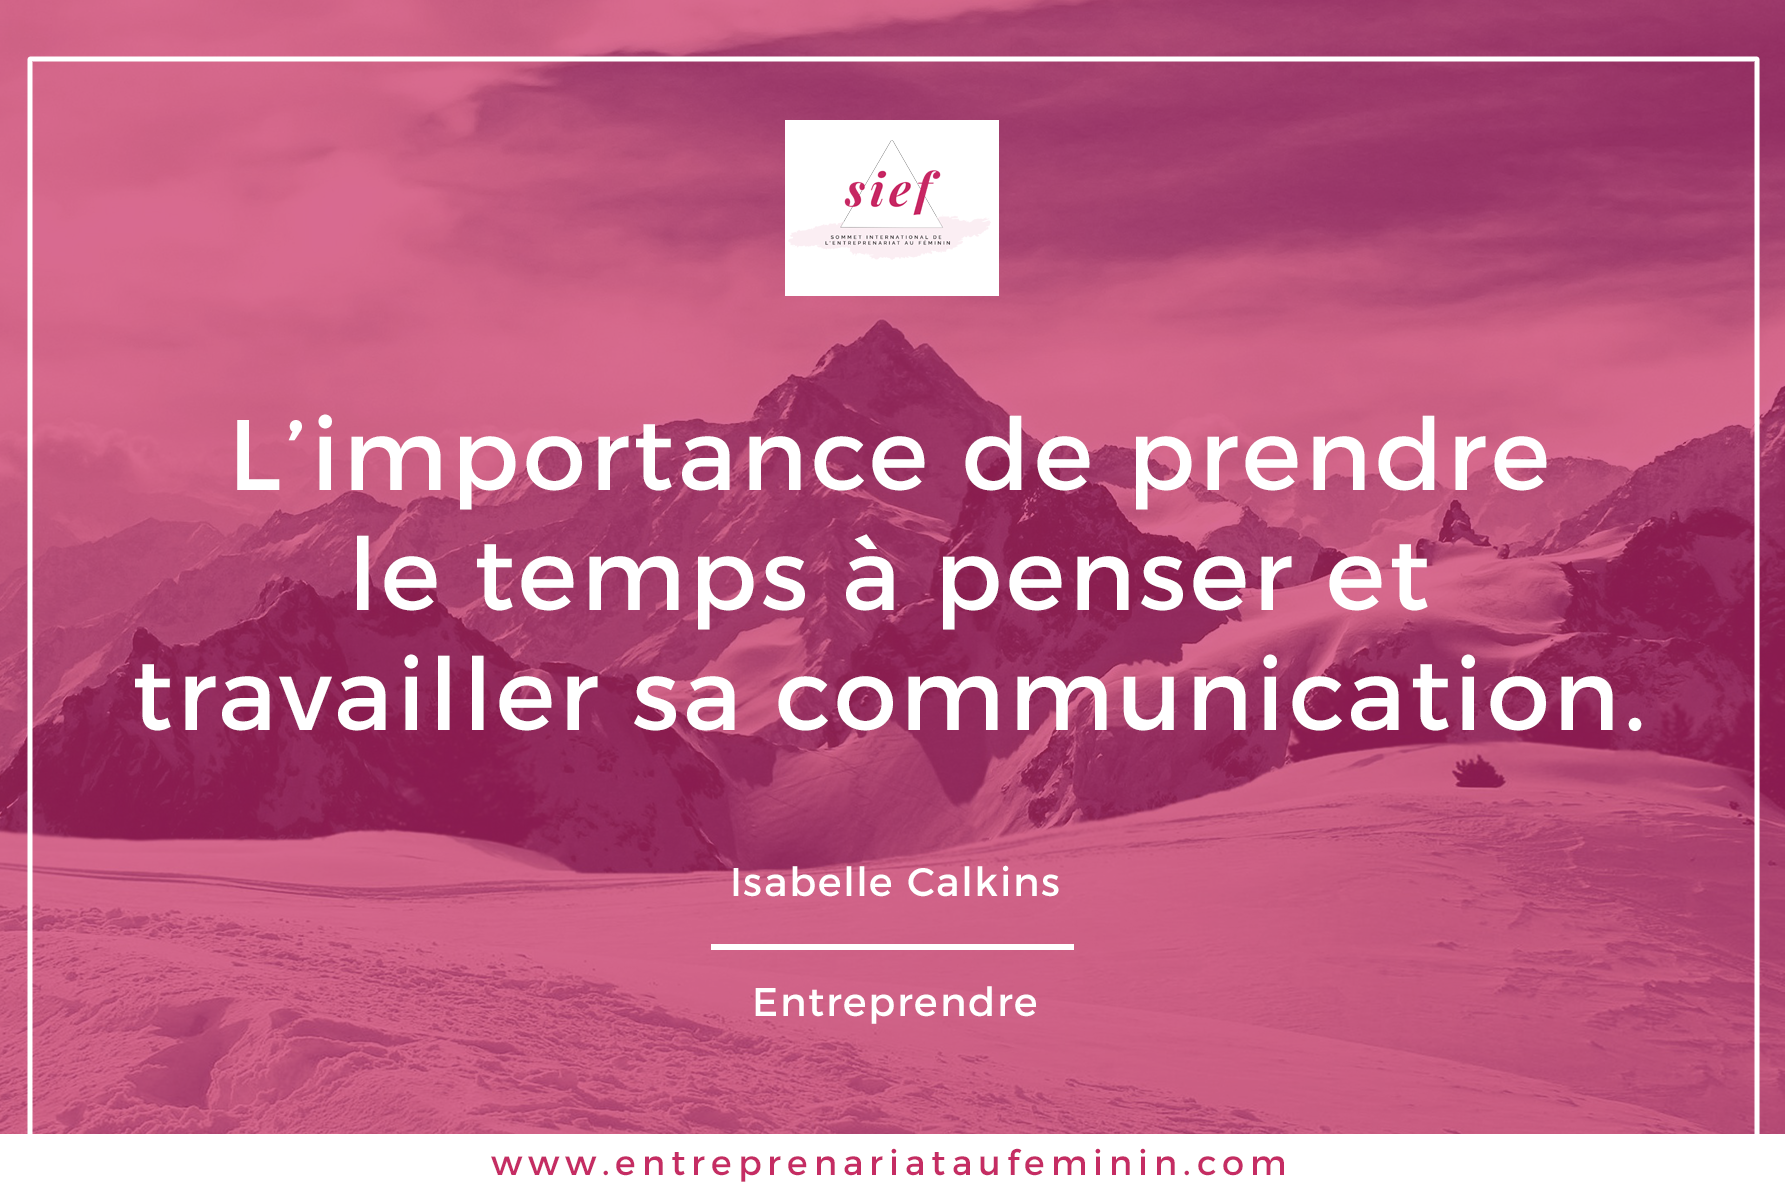 entreprendre_importance_communication